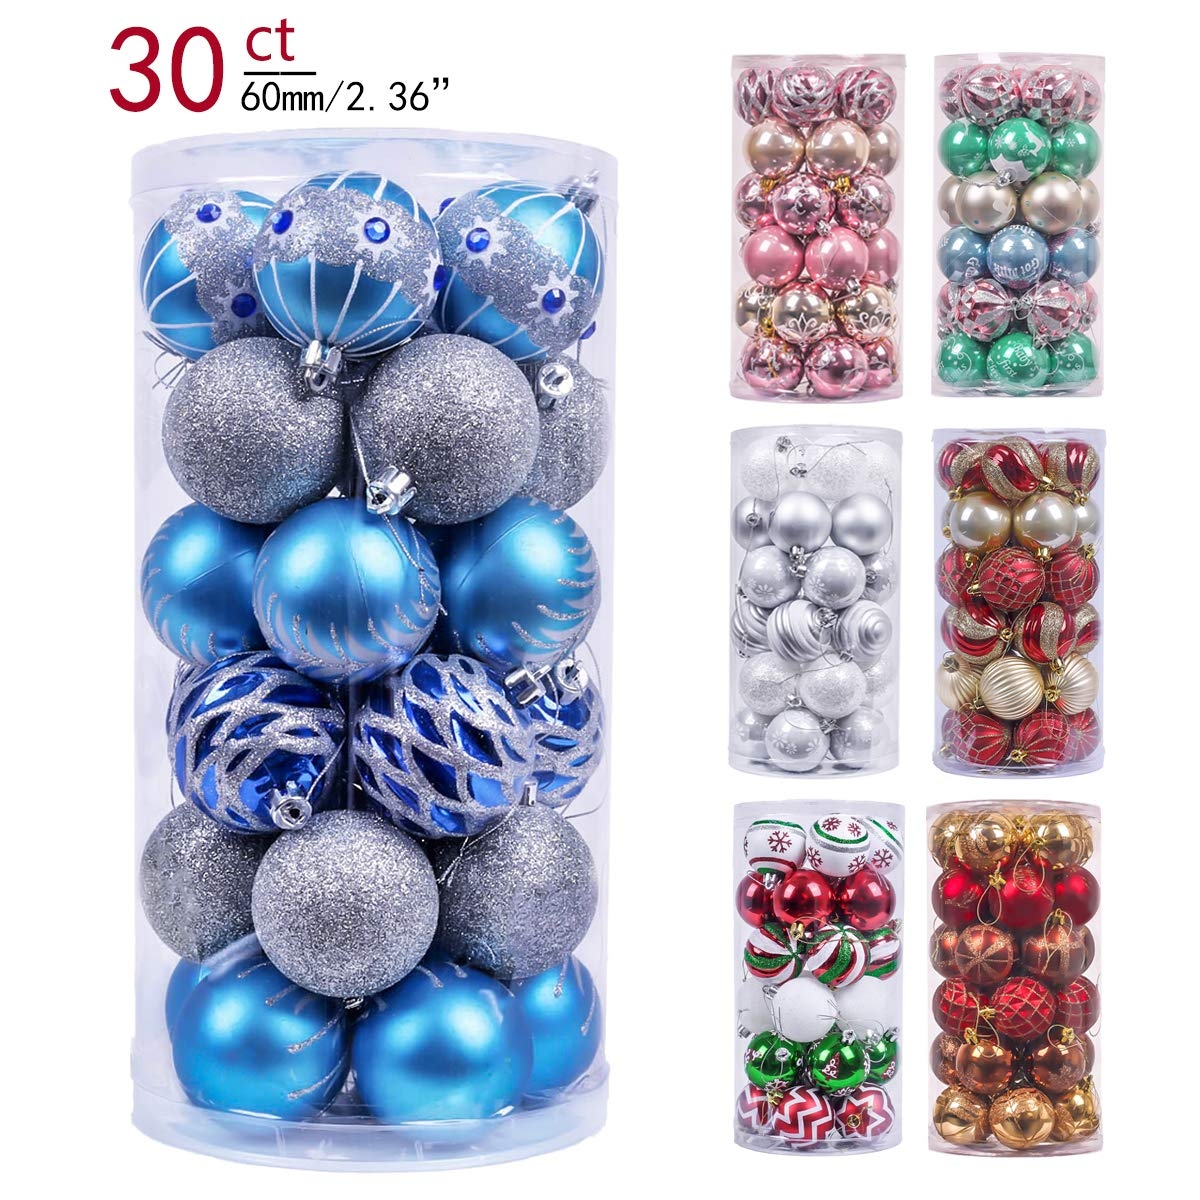 Valery Madelyn 30ct 60mm Winter Wishes Blue Silver Shatterproof Christmas Ball Ornaments Decoration,Themed with Tree Skirt(Not Included) EG0101-0033